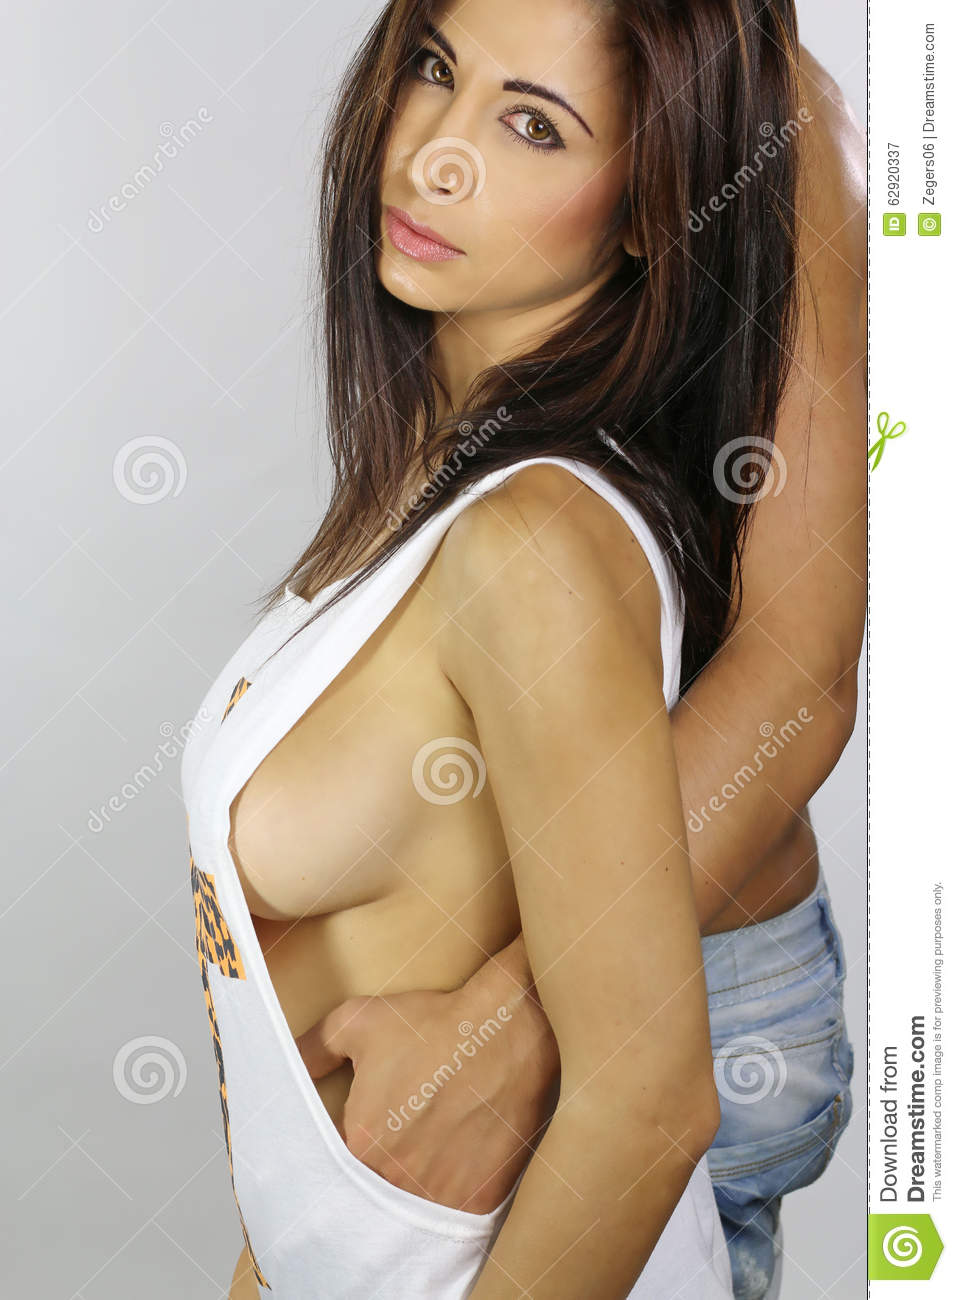 Phrase sexy pictures of men touching women refuse